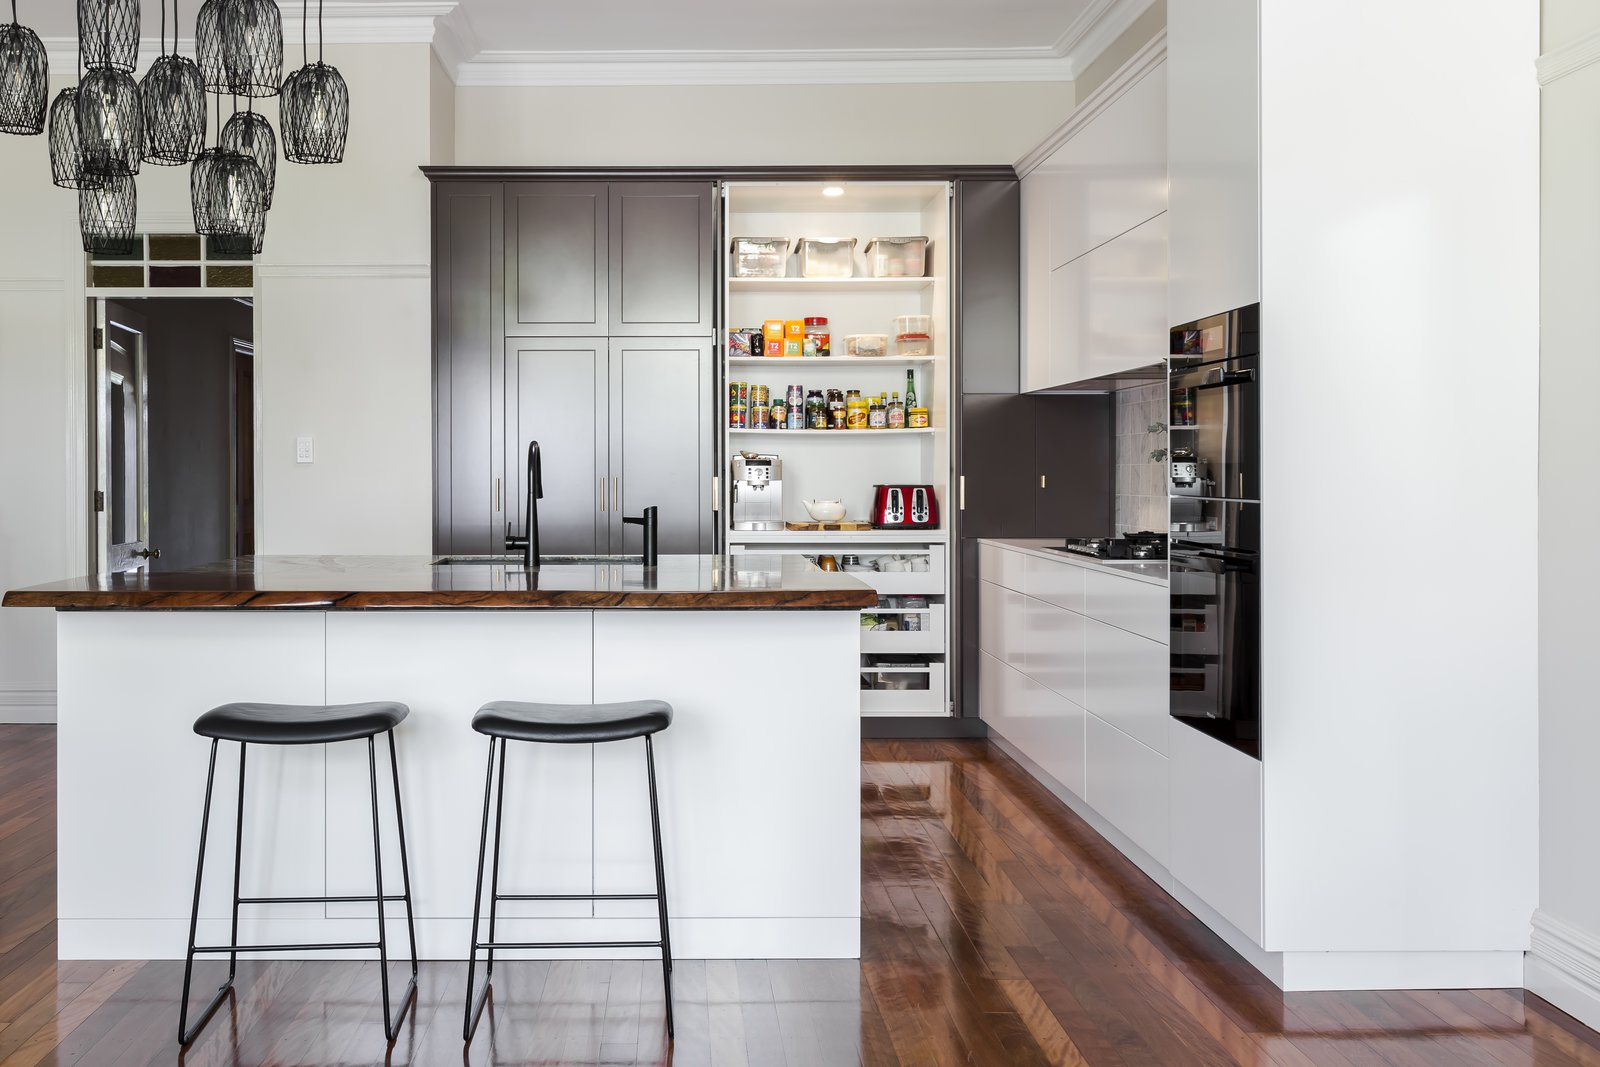 4 Brilliant Kitchen Remodel Ideas: 10 Design Tips For Kitchens, According To Expert